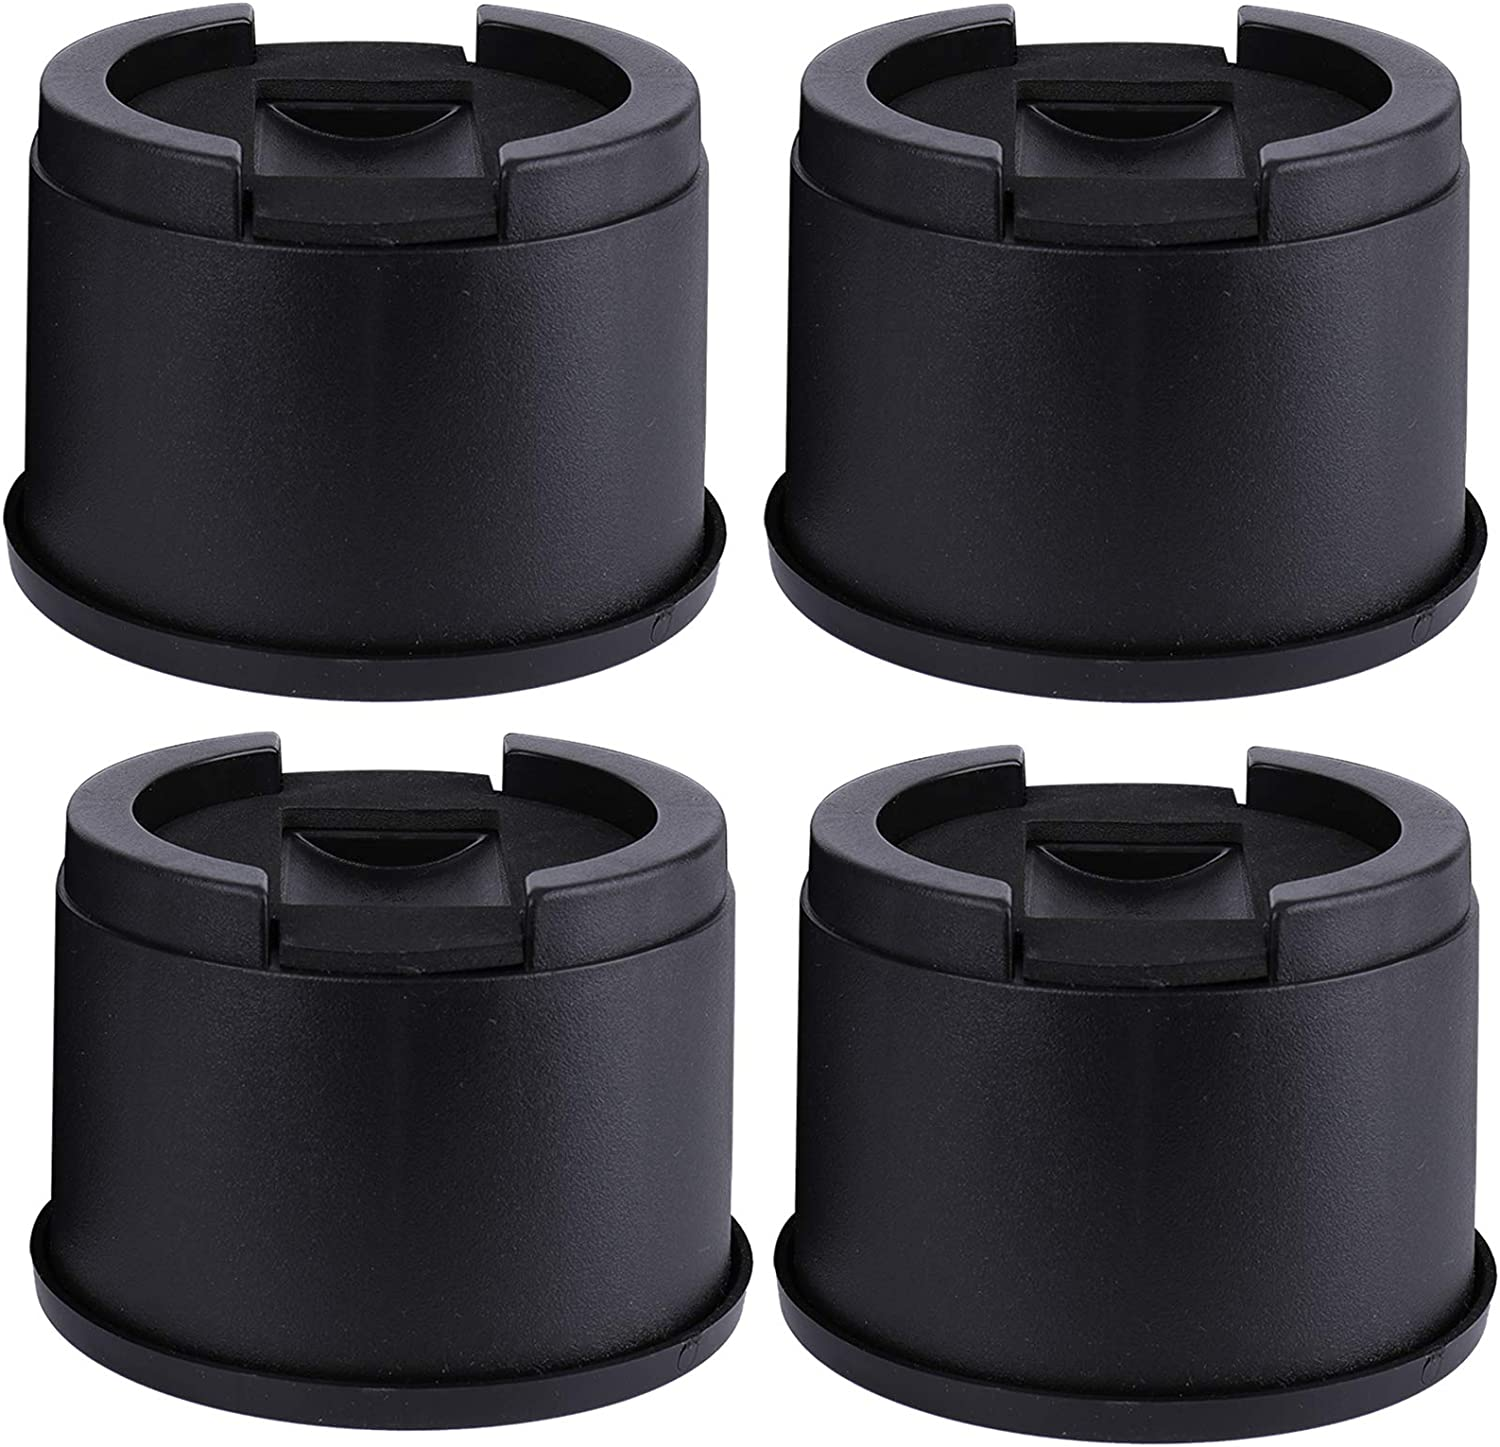 Yopay 4 Pack Bed and Furniture Risers, 3 Inch Stackable Adjustable Furniture Raisers for Protecting Floors and Surfaces, Durable ABS Plastic and Anti Slip Pad, Lifts Height 3